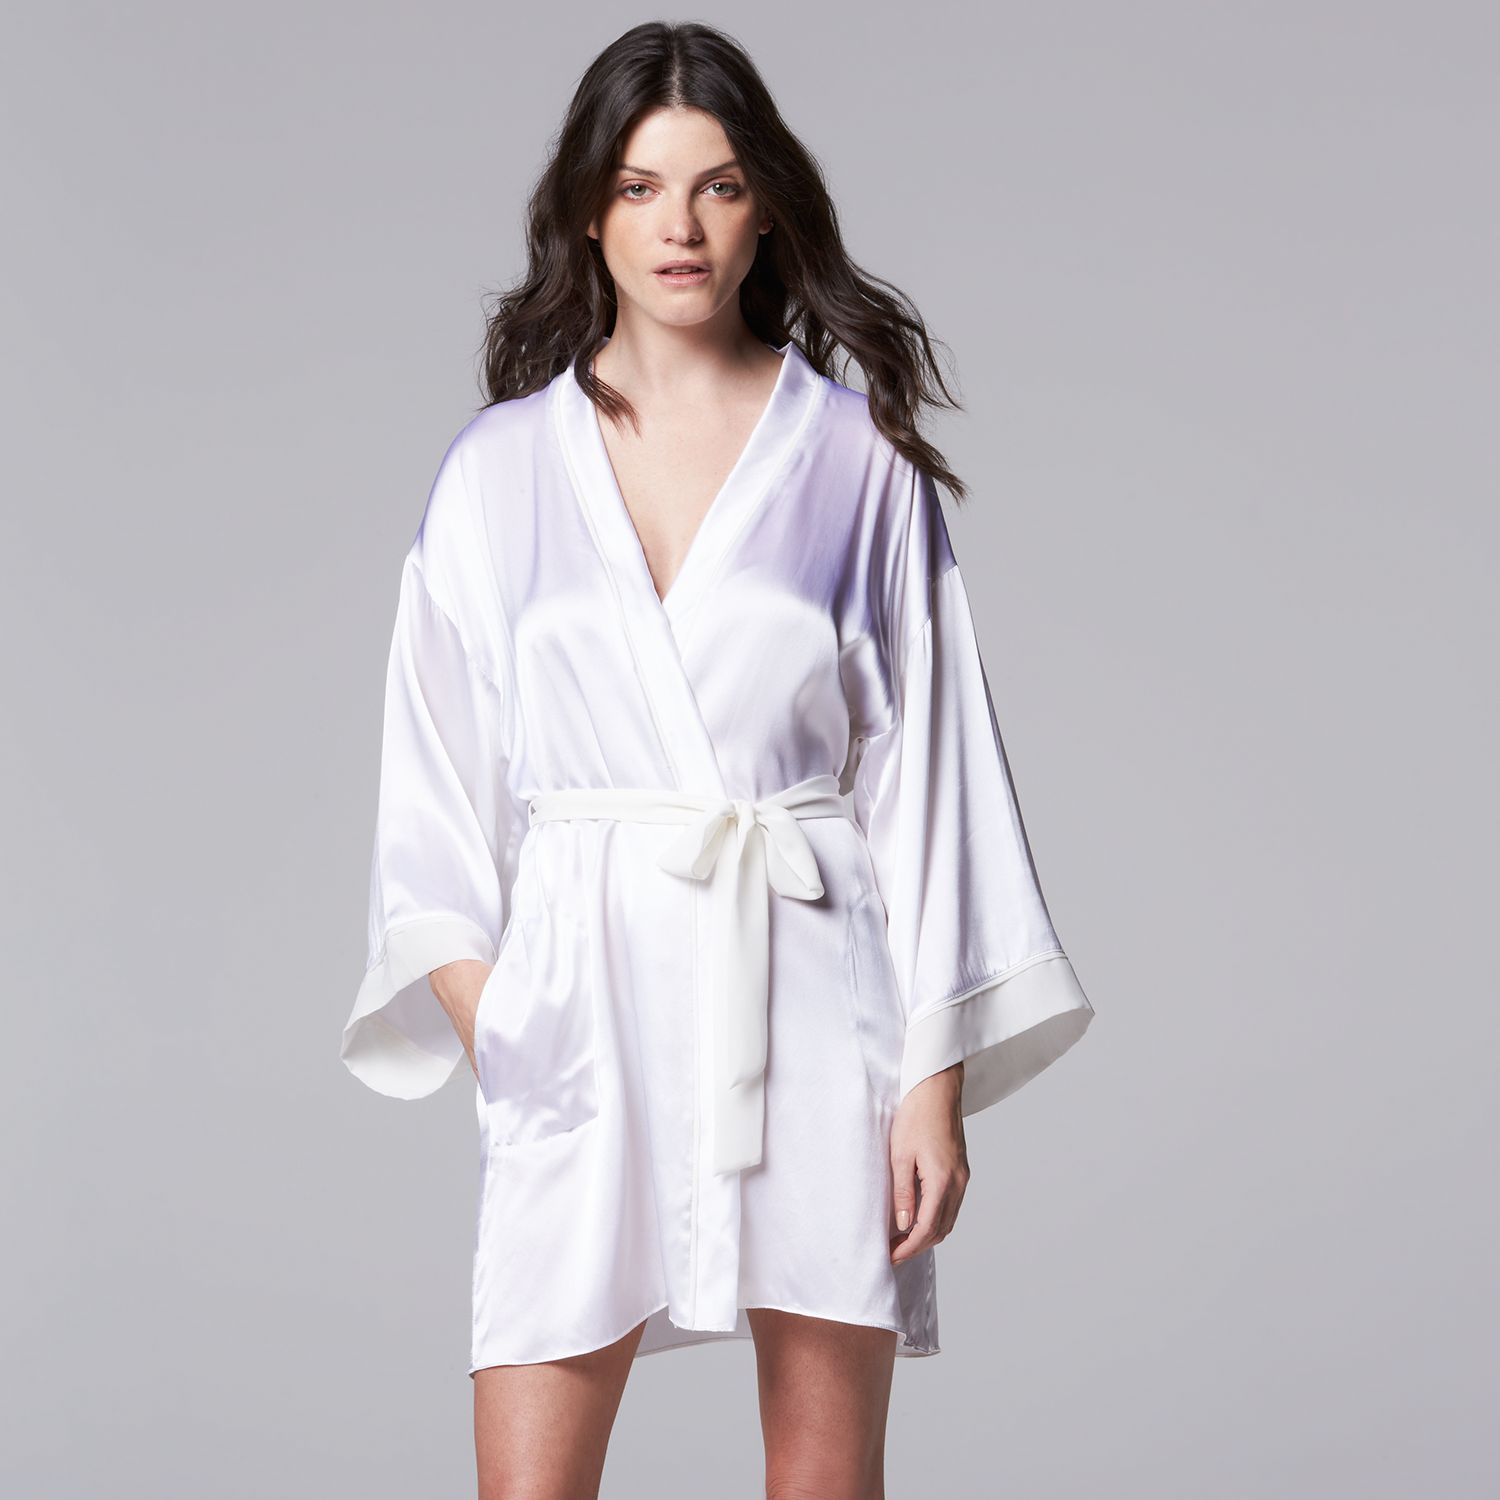 Womens Simply Vera Vera Wang Dream Bridal Charmeuse Wrap Robe